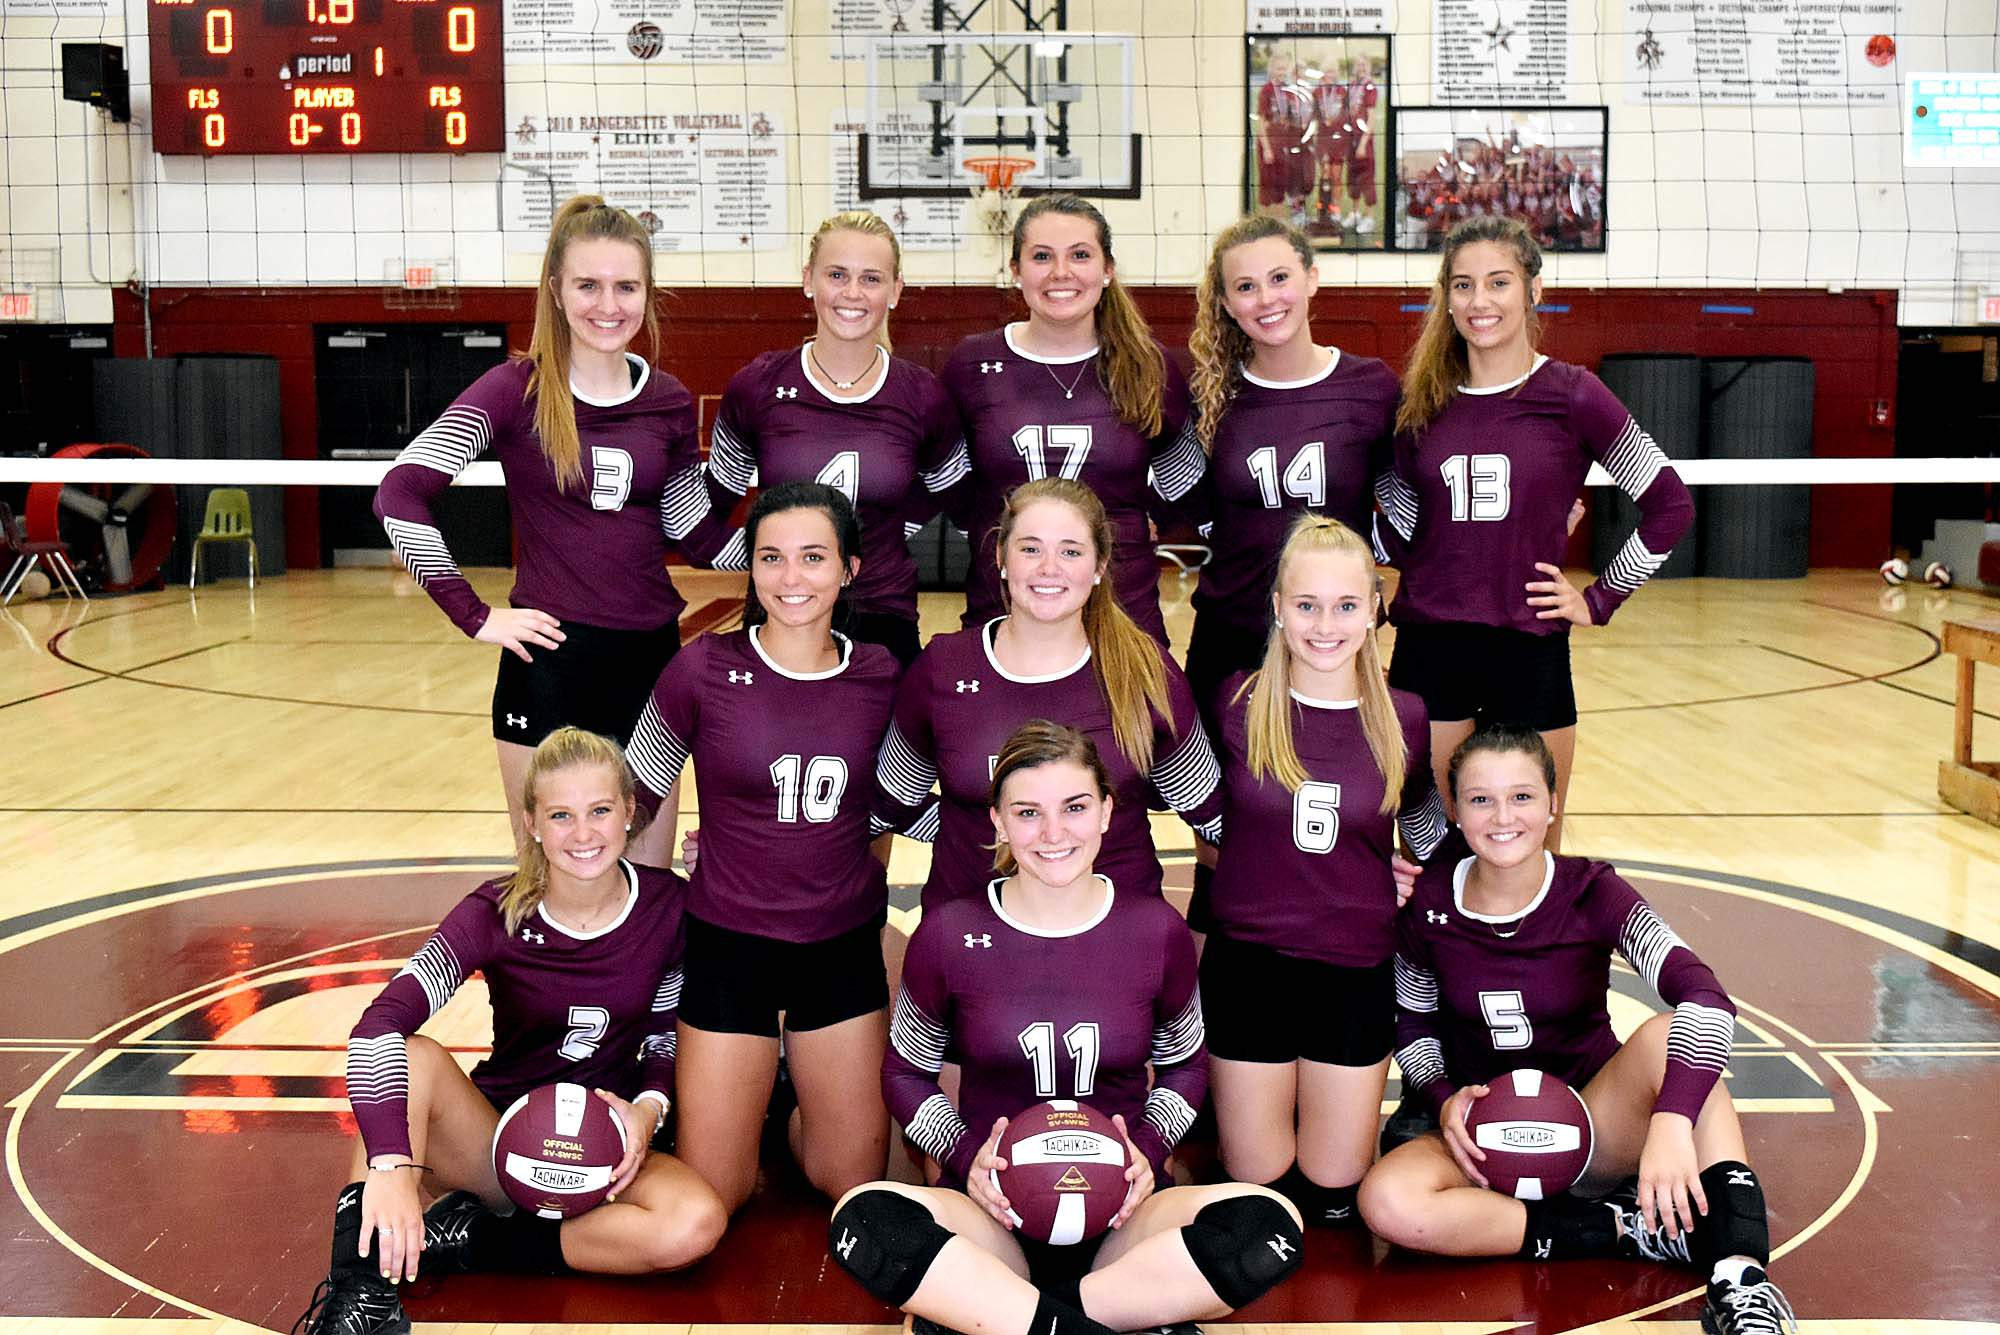 Members of the Benton High School volleyball team include: front, Ember Milby; second row from left: Sheridan Campbell, Madi McLain, Zoe Carlton, Cailyn Fowlkes and Presley Allsopp. Back row: Kaitlyn Kuchar, Kiley Carter, Sesley Tedeschi, Mady Darr and MaKenna Mumbower.